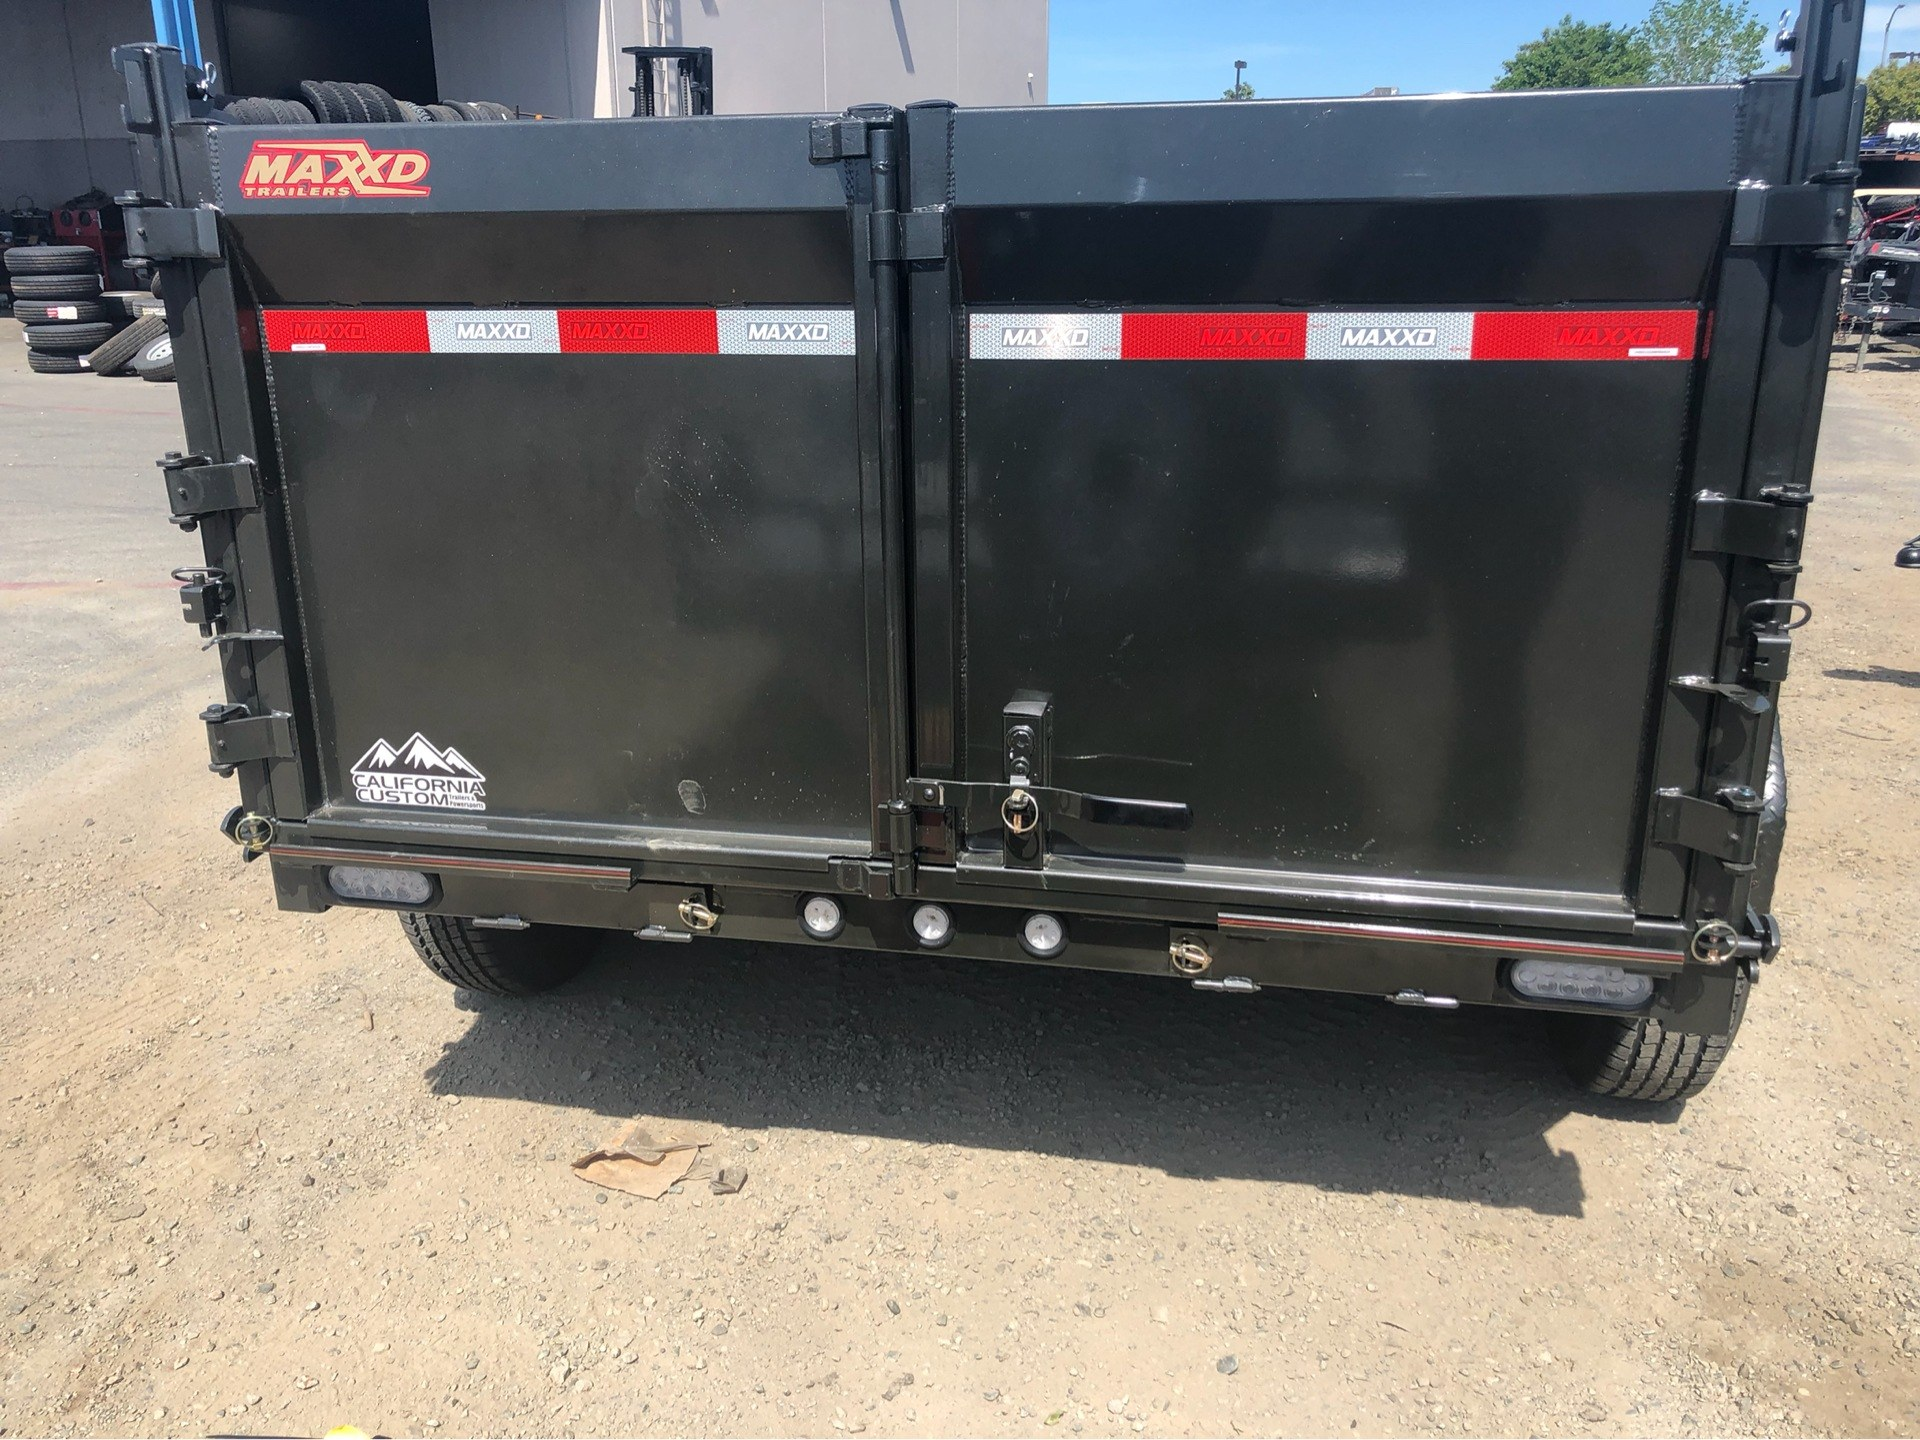 "2019 MAXXD TRAILERS 10' x 72"" DUMP TRAILER in Elk Grove, California - Photo 8"